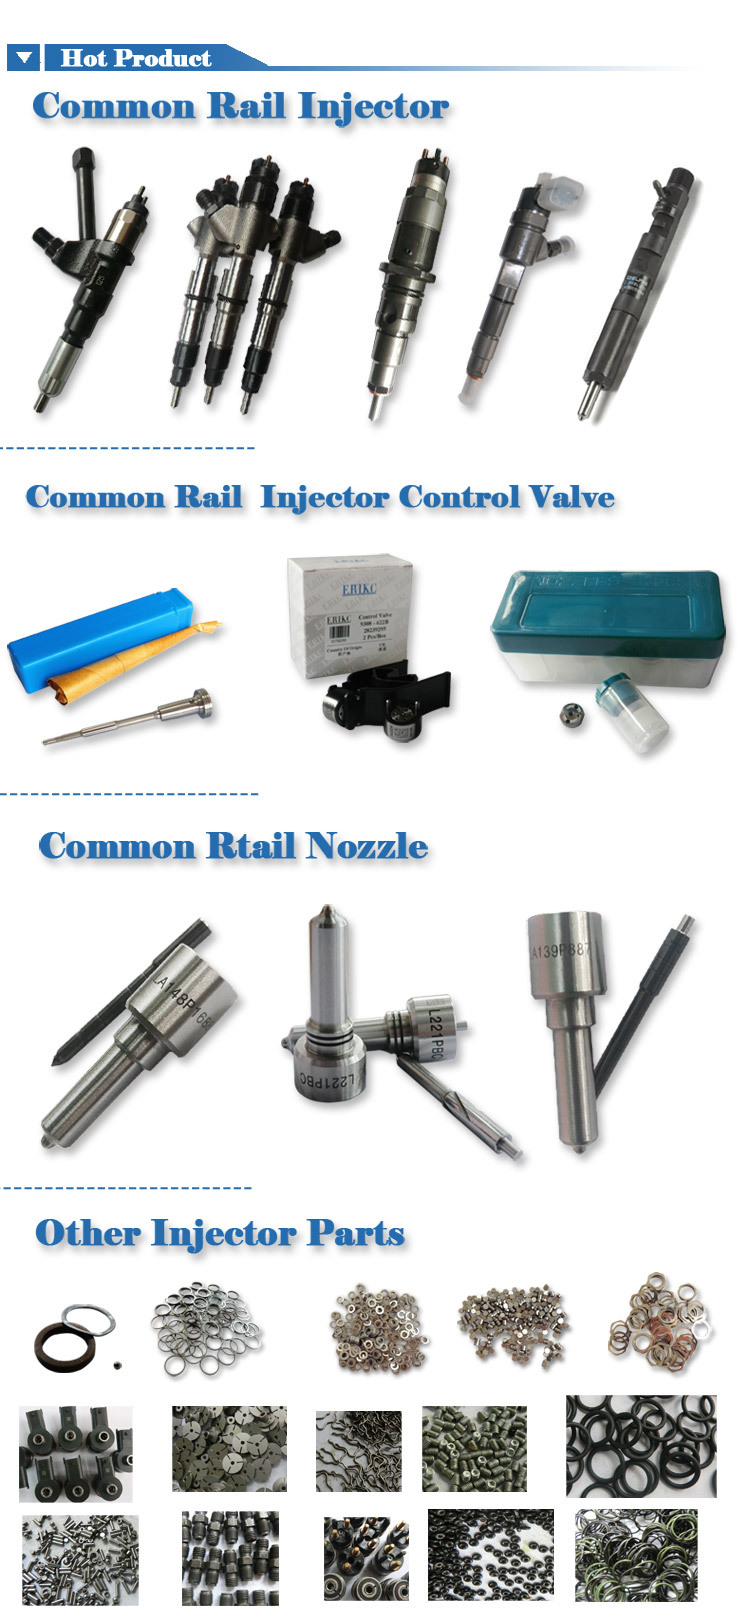 common rail injector repair kits 7135-644 including nozzle L087PBD control valve 9308-621C for RENAULT EJBR04101D , EJBR01701Z